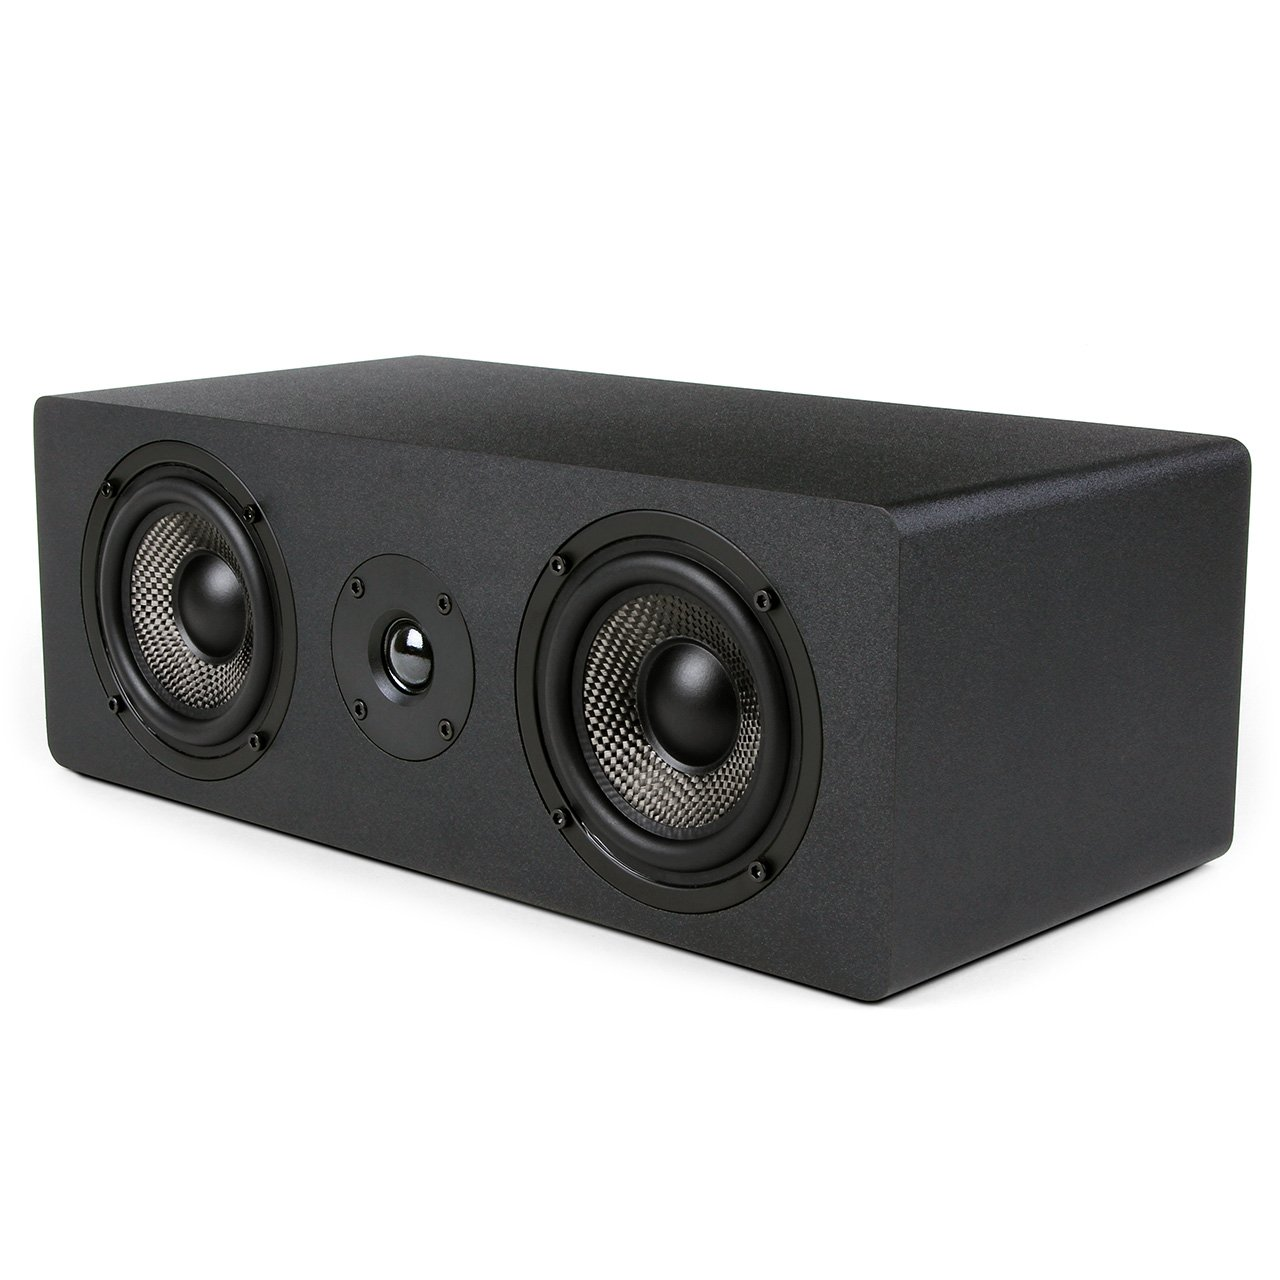 Micca MB42X-C Center Channel Speaker with Dual 4-Inch Carbon Fiber Woofer and Silk Dome Tweeter, Black